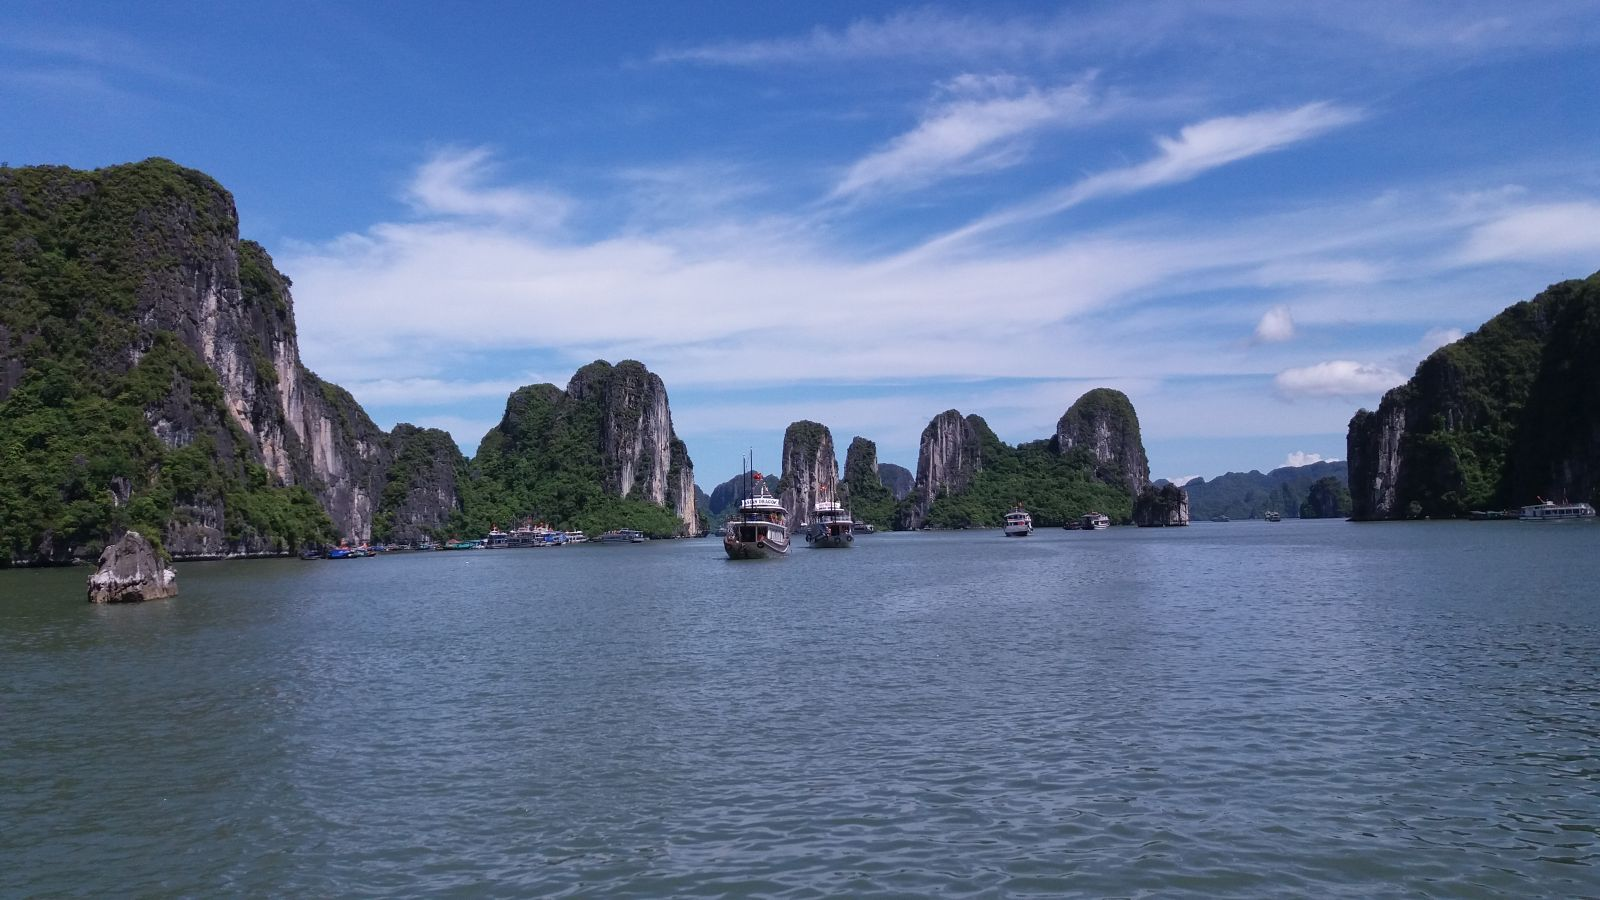 Halong bay day cruise - view